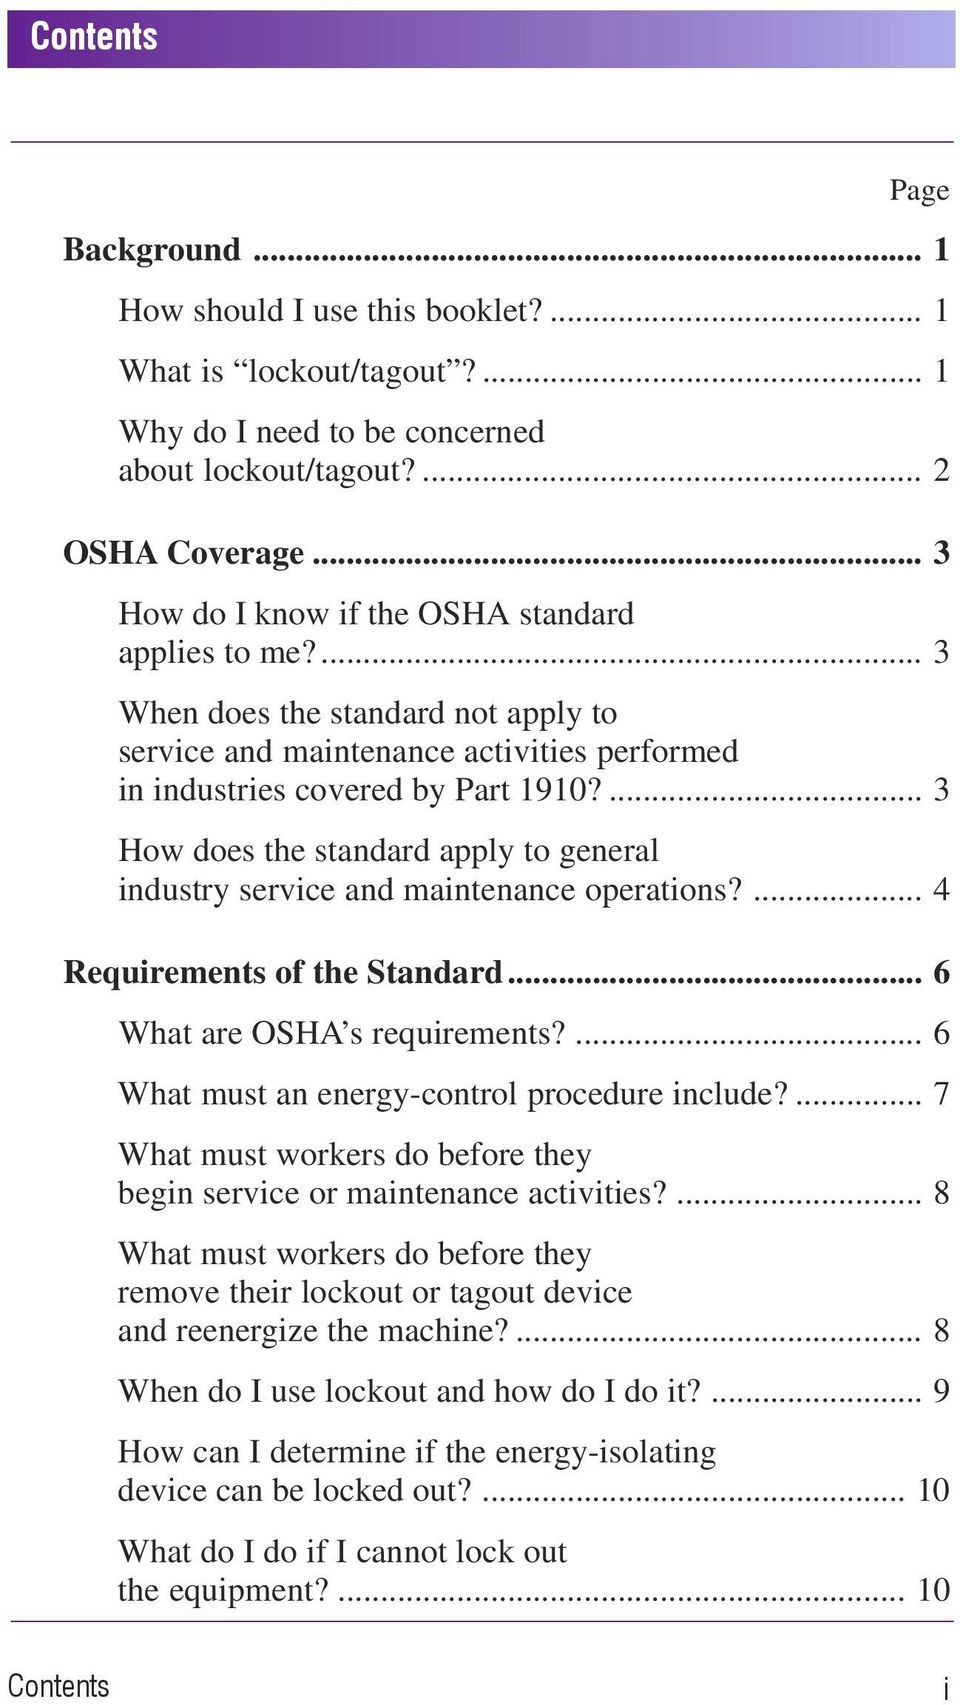 ... 3 How does the standard apply to general industry service and maintenance operations?... 4 Requirements of the Standard... 6 What are OSHA s requirements?